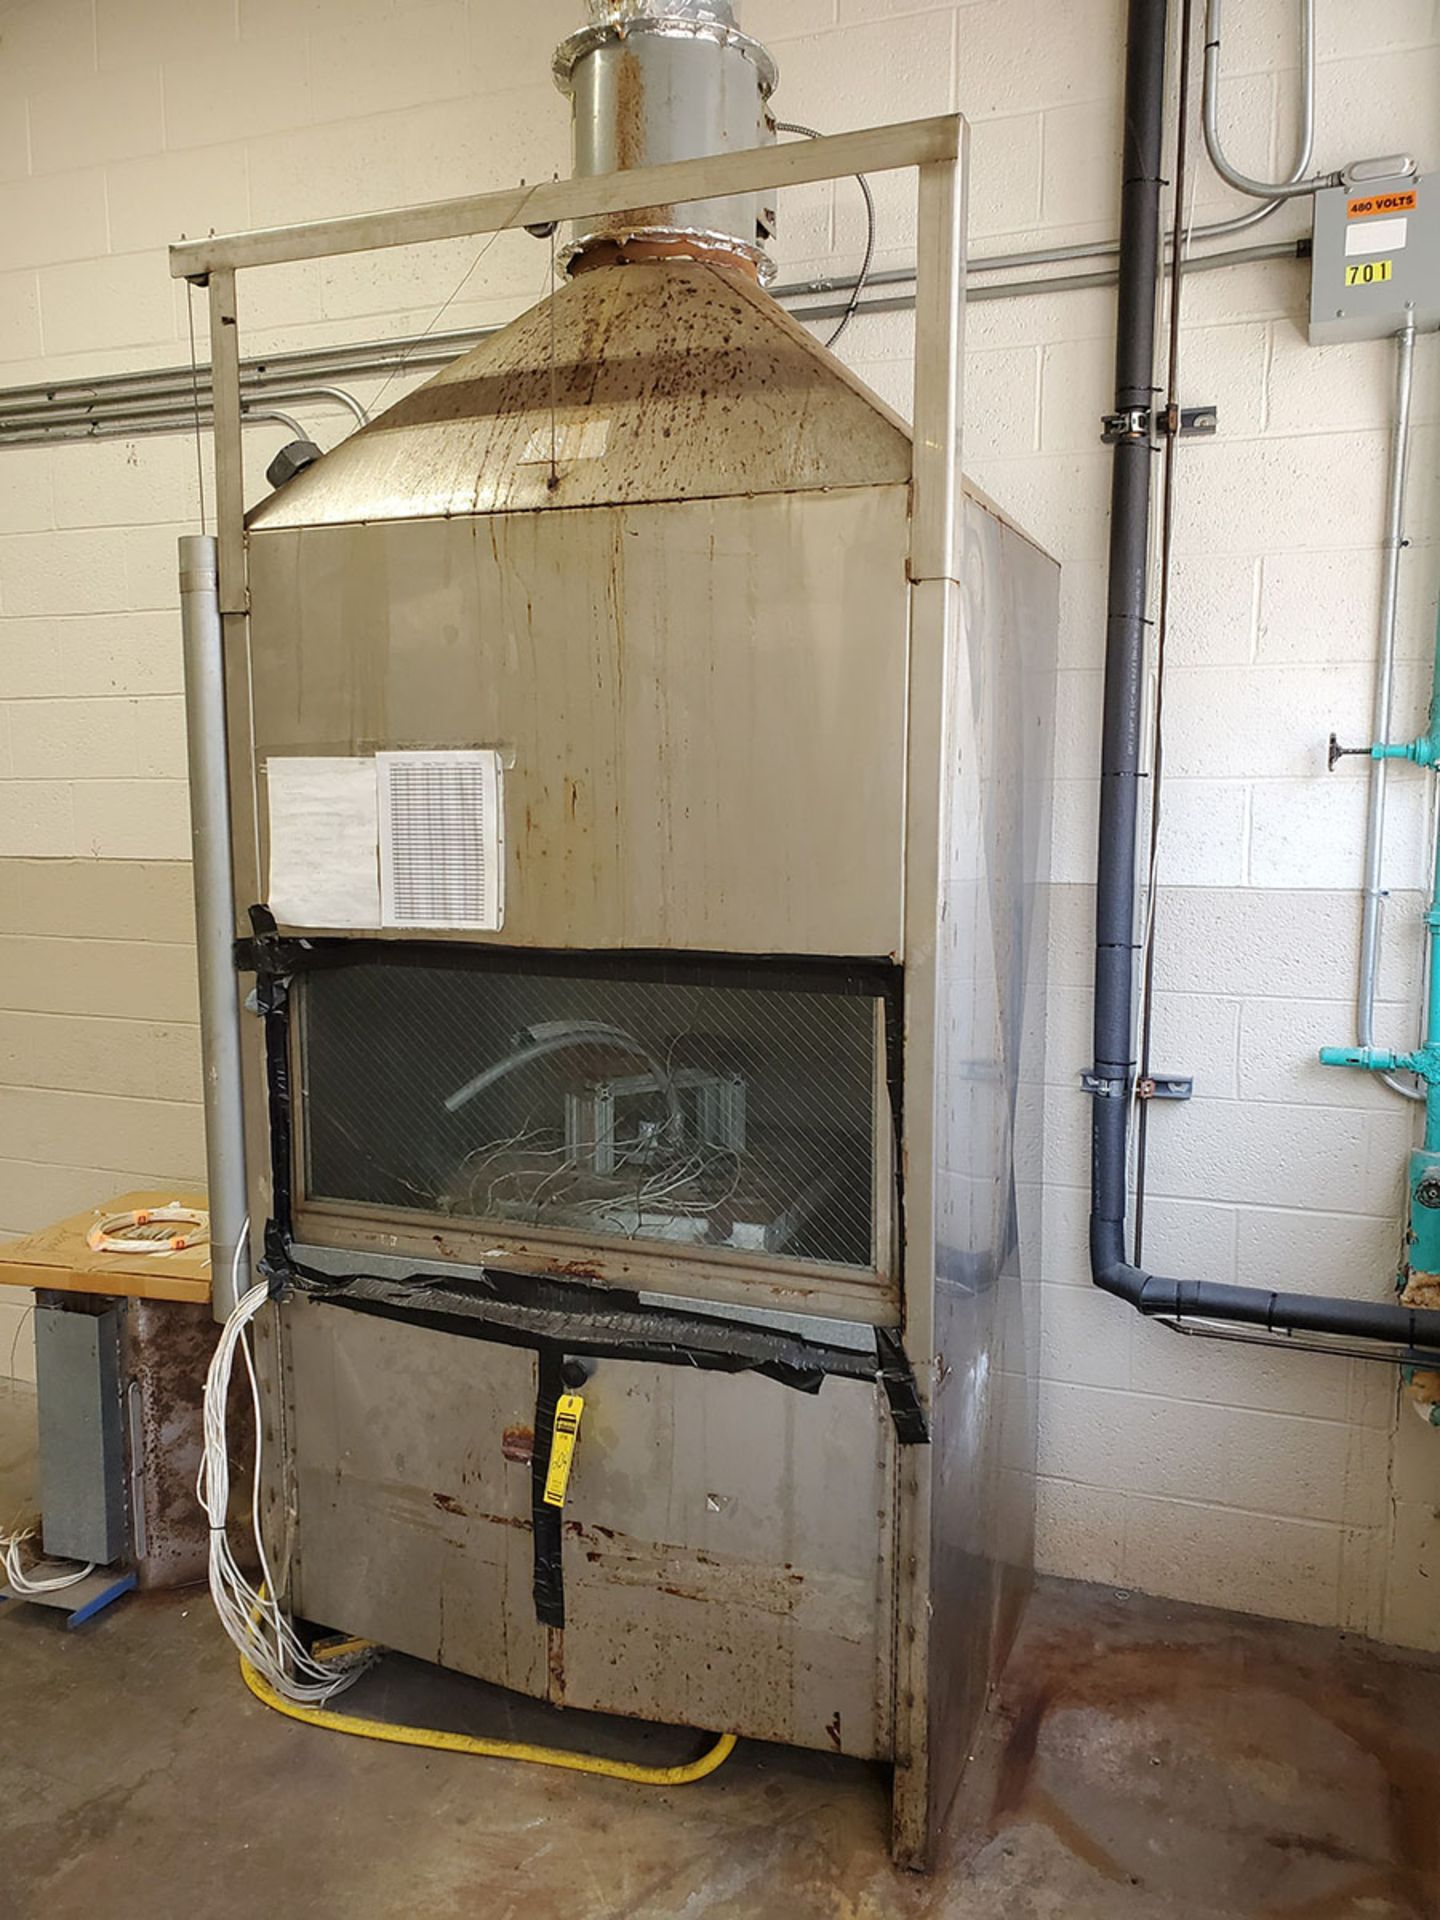 Lot 204 - KILN OVEN (OUT OF SERVICE)